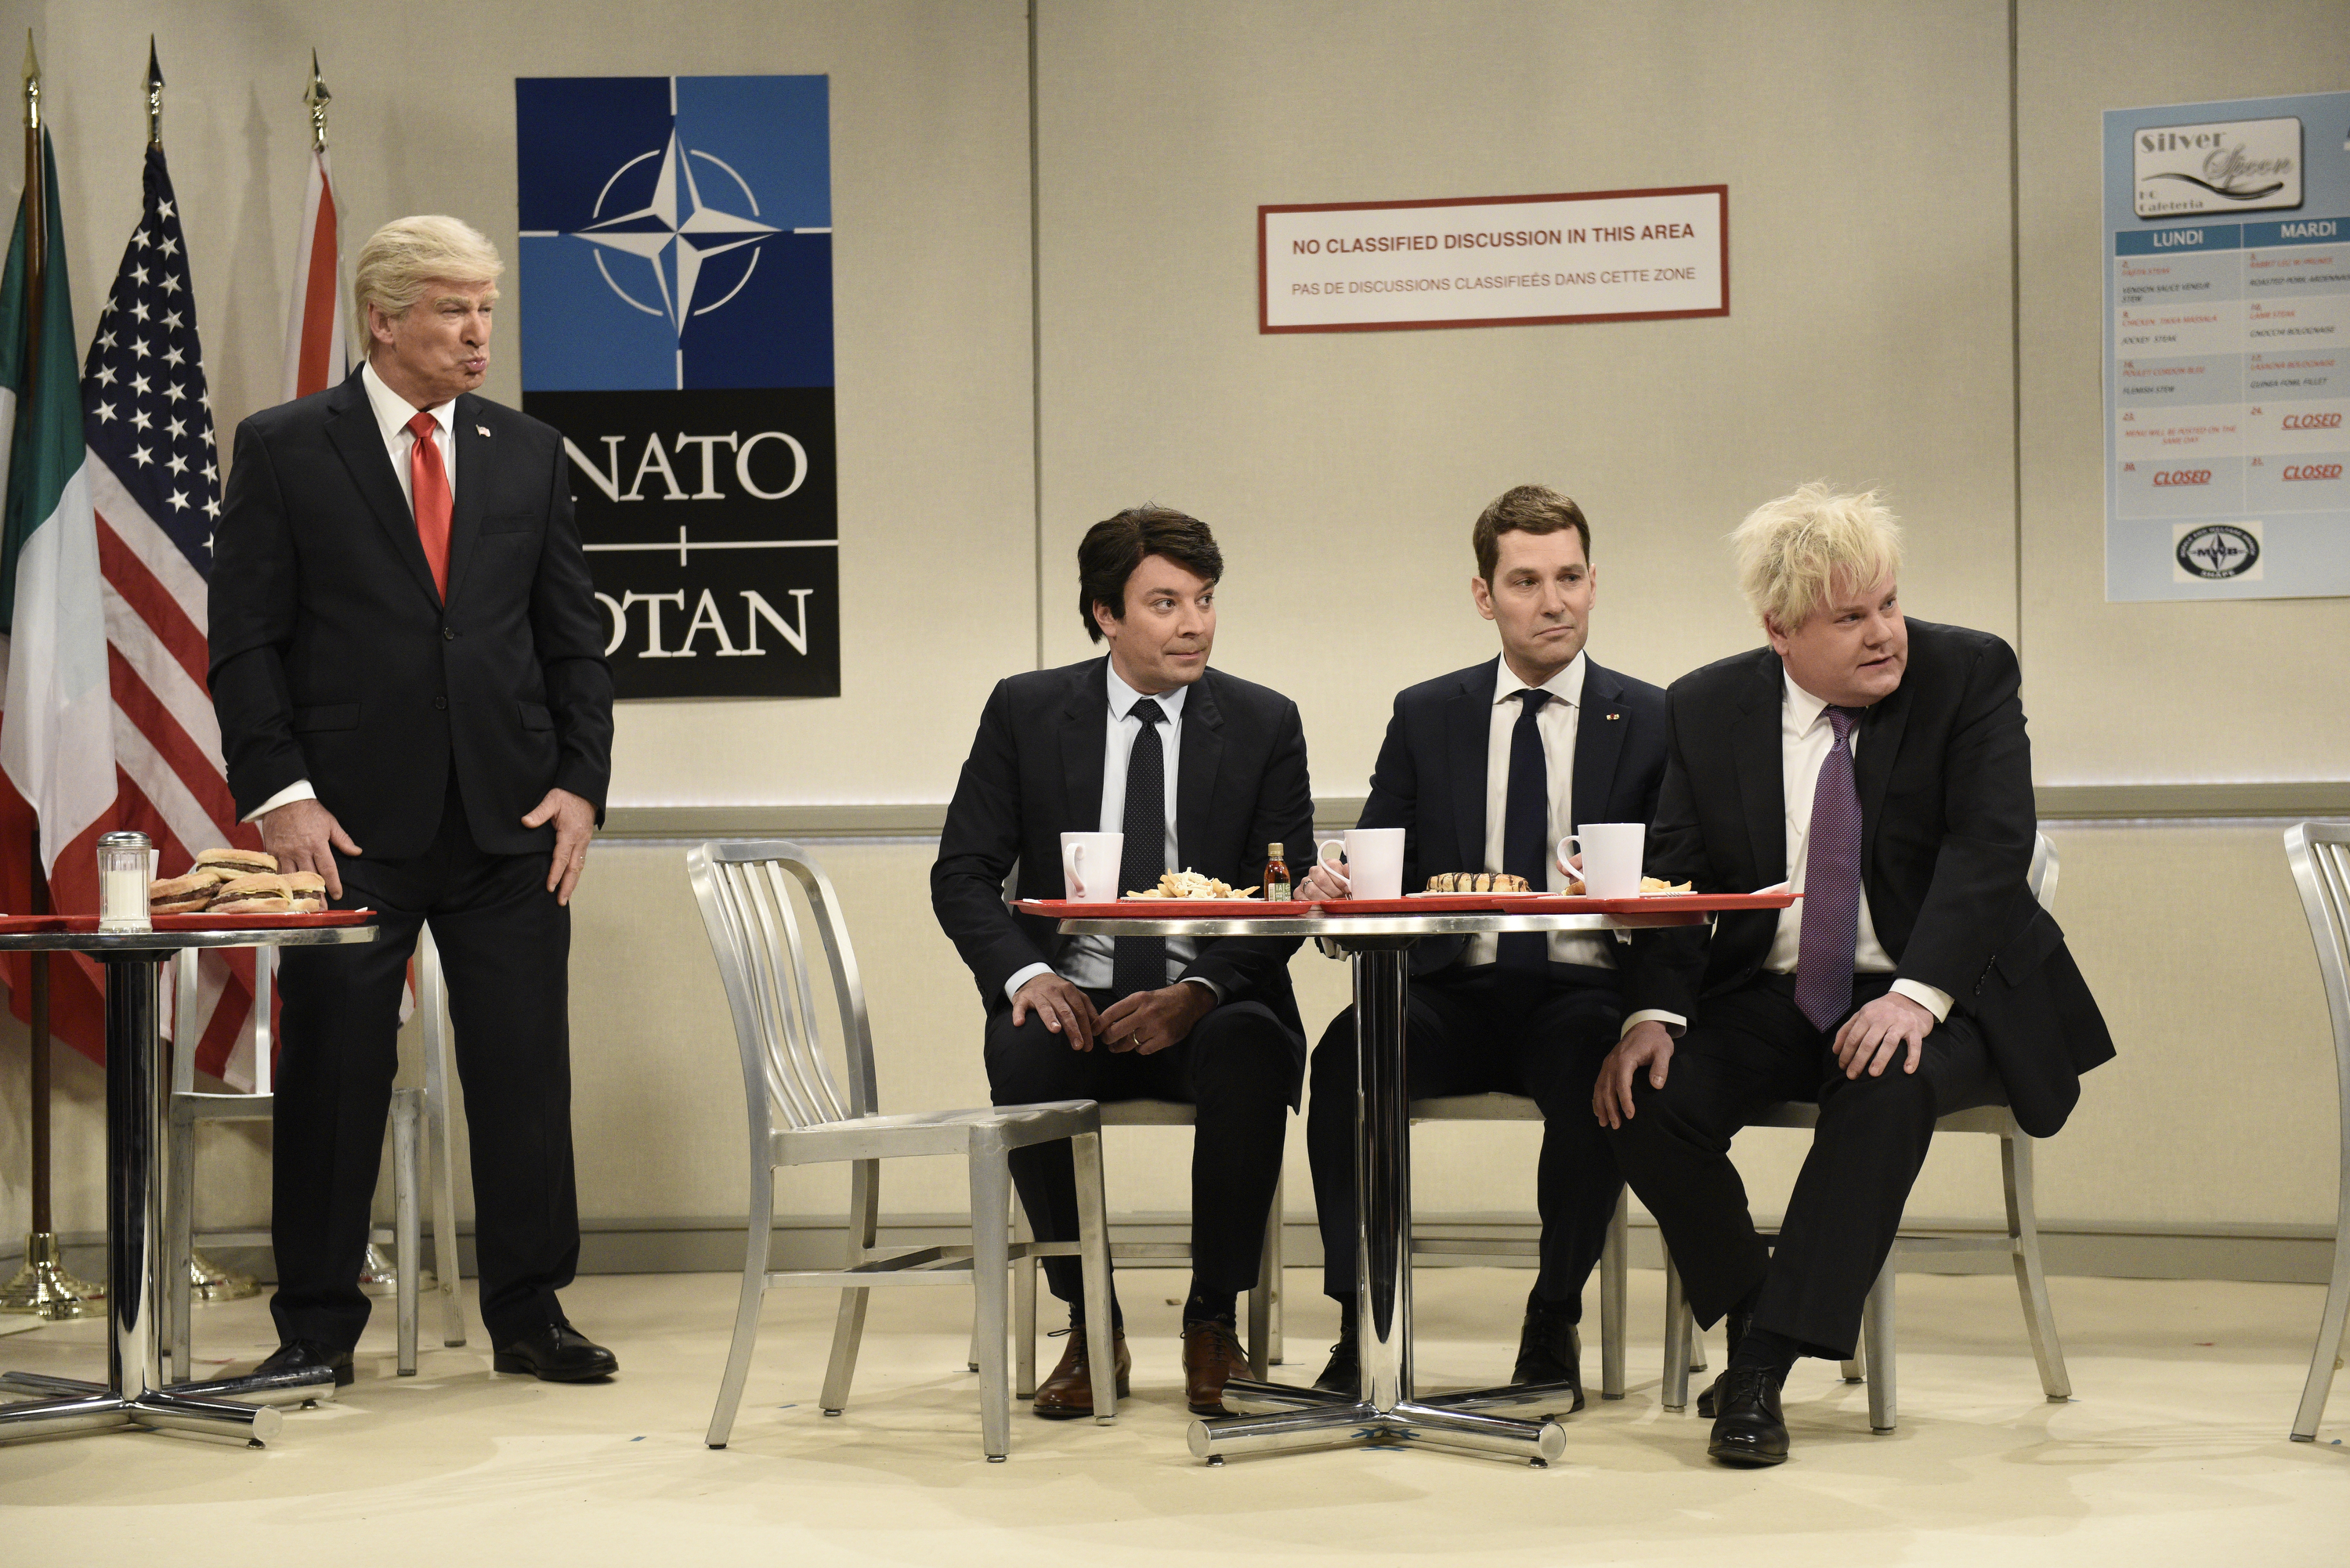 Alec Baldwin — as Donald Trump — speaks with Jimmy Fallon's Justin Trudeau, Paul Rudd's Emmanuel Macron, and James Corden's Boris Johnson at a NATO summit.